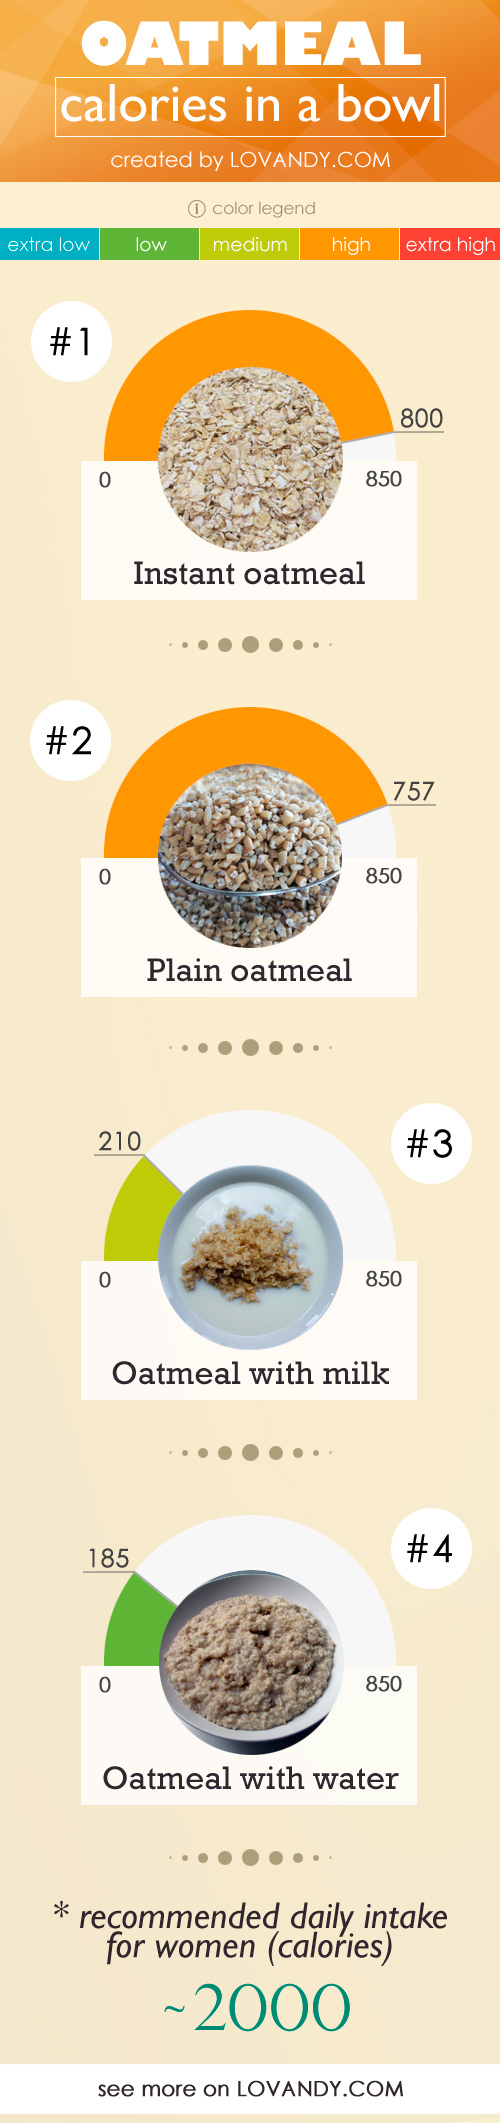 calories in oatmeal with milk